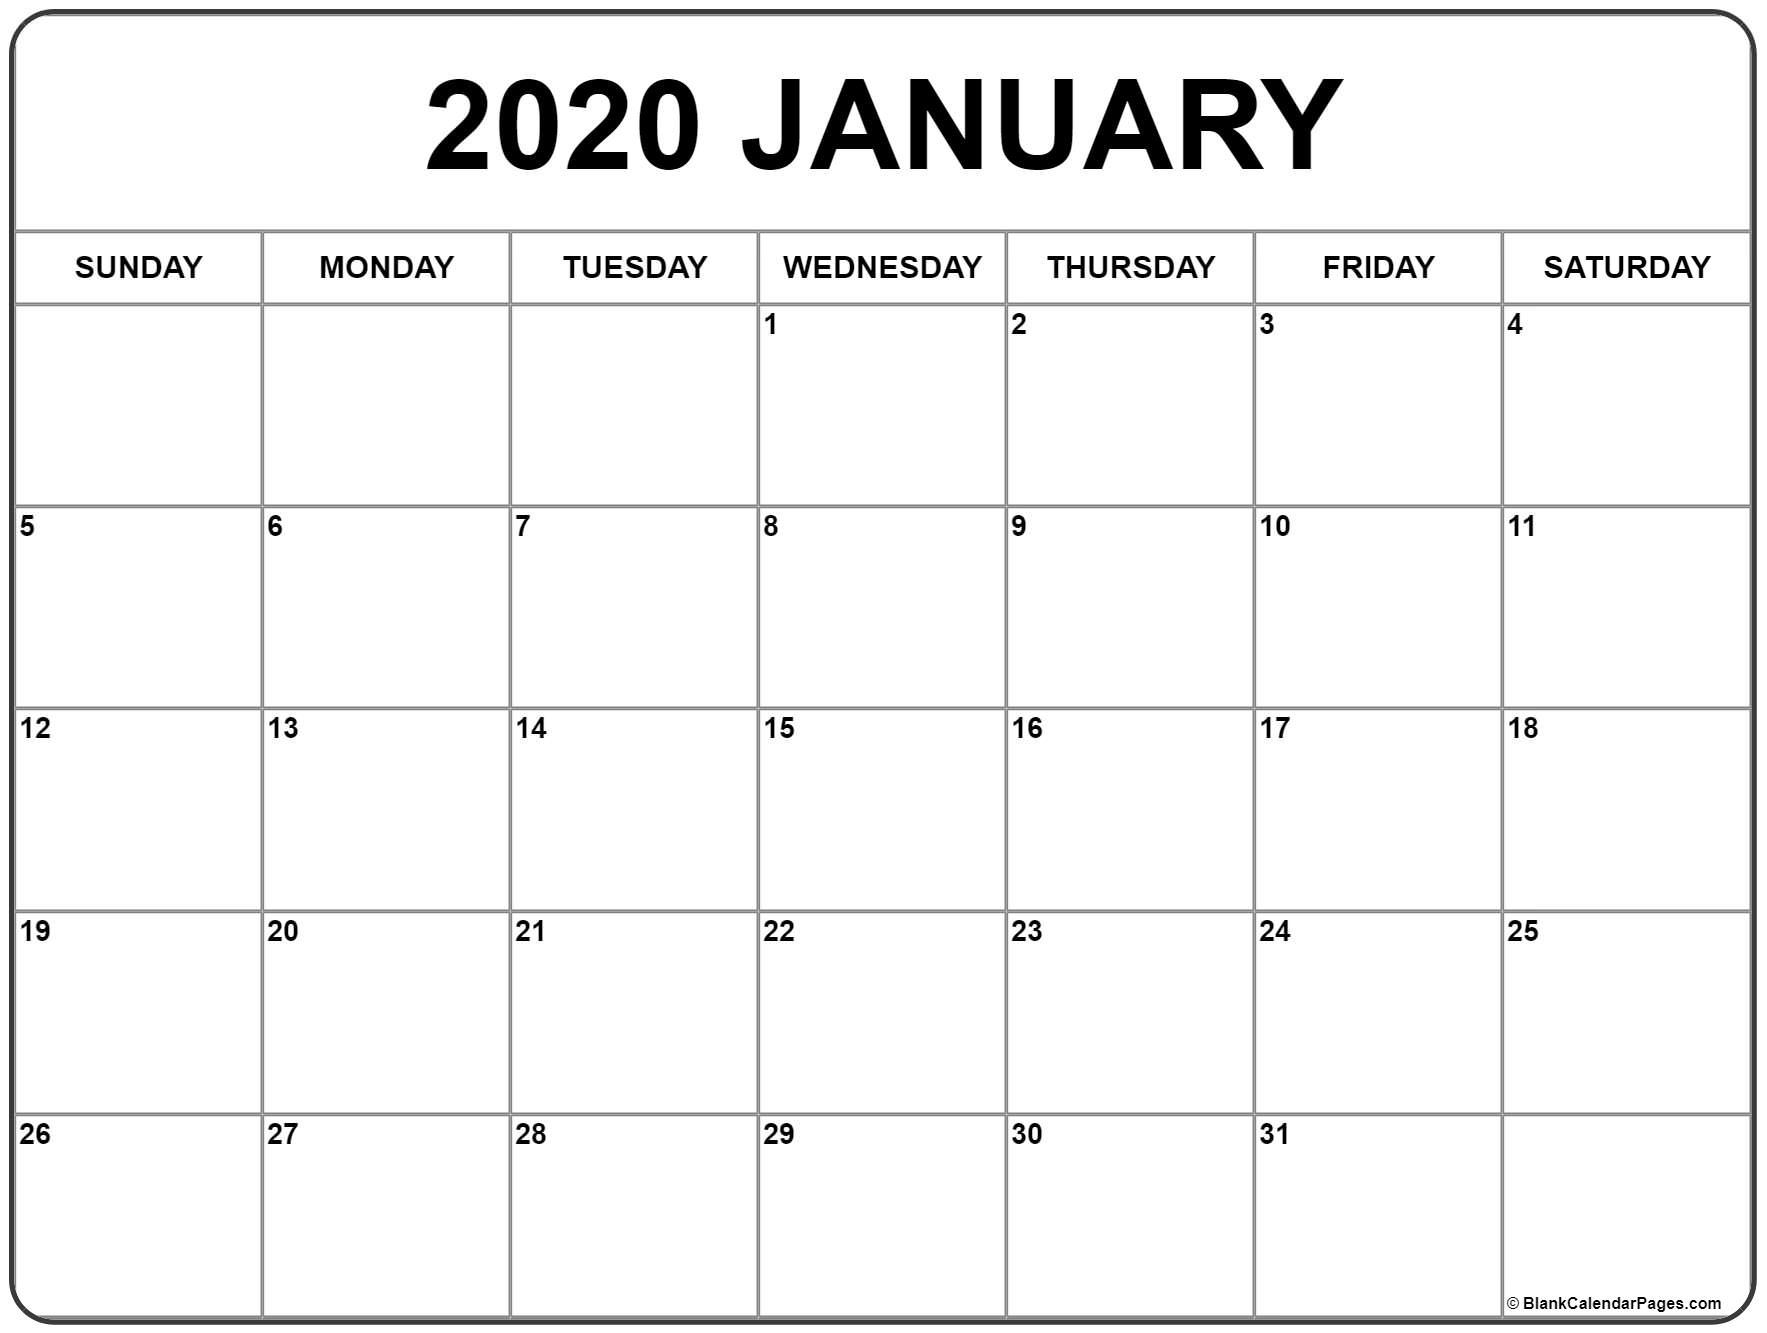 January 2020 Calendar | Free Printable Monthly Calendars in 2020 Free Monthly Printable Calendars